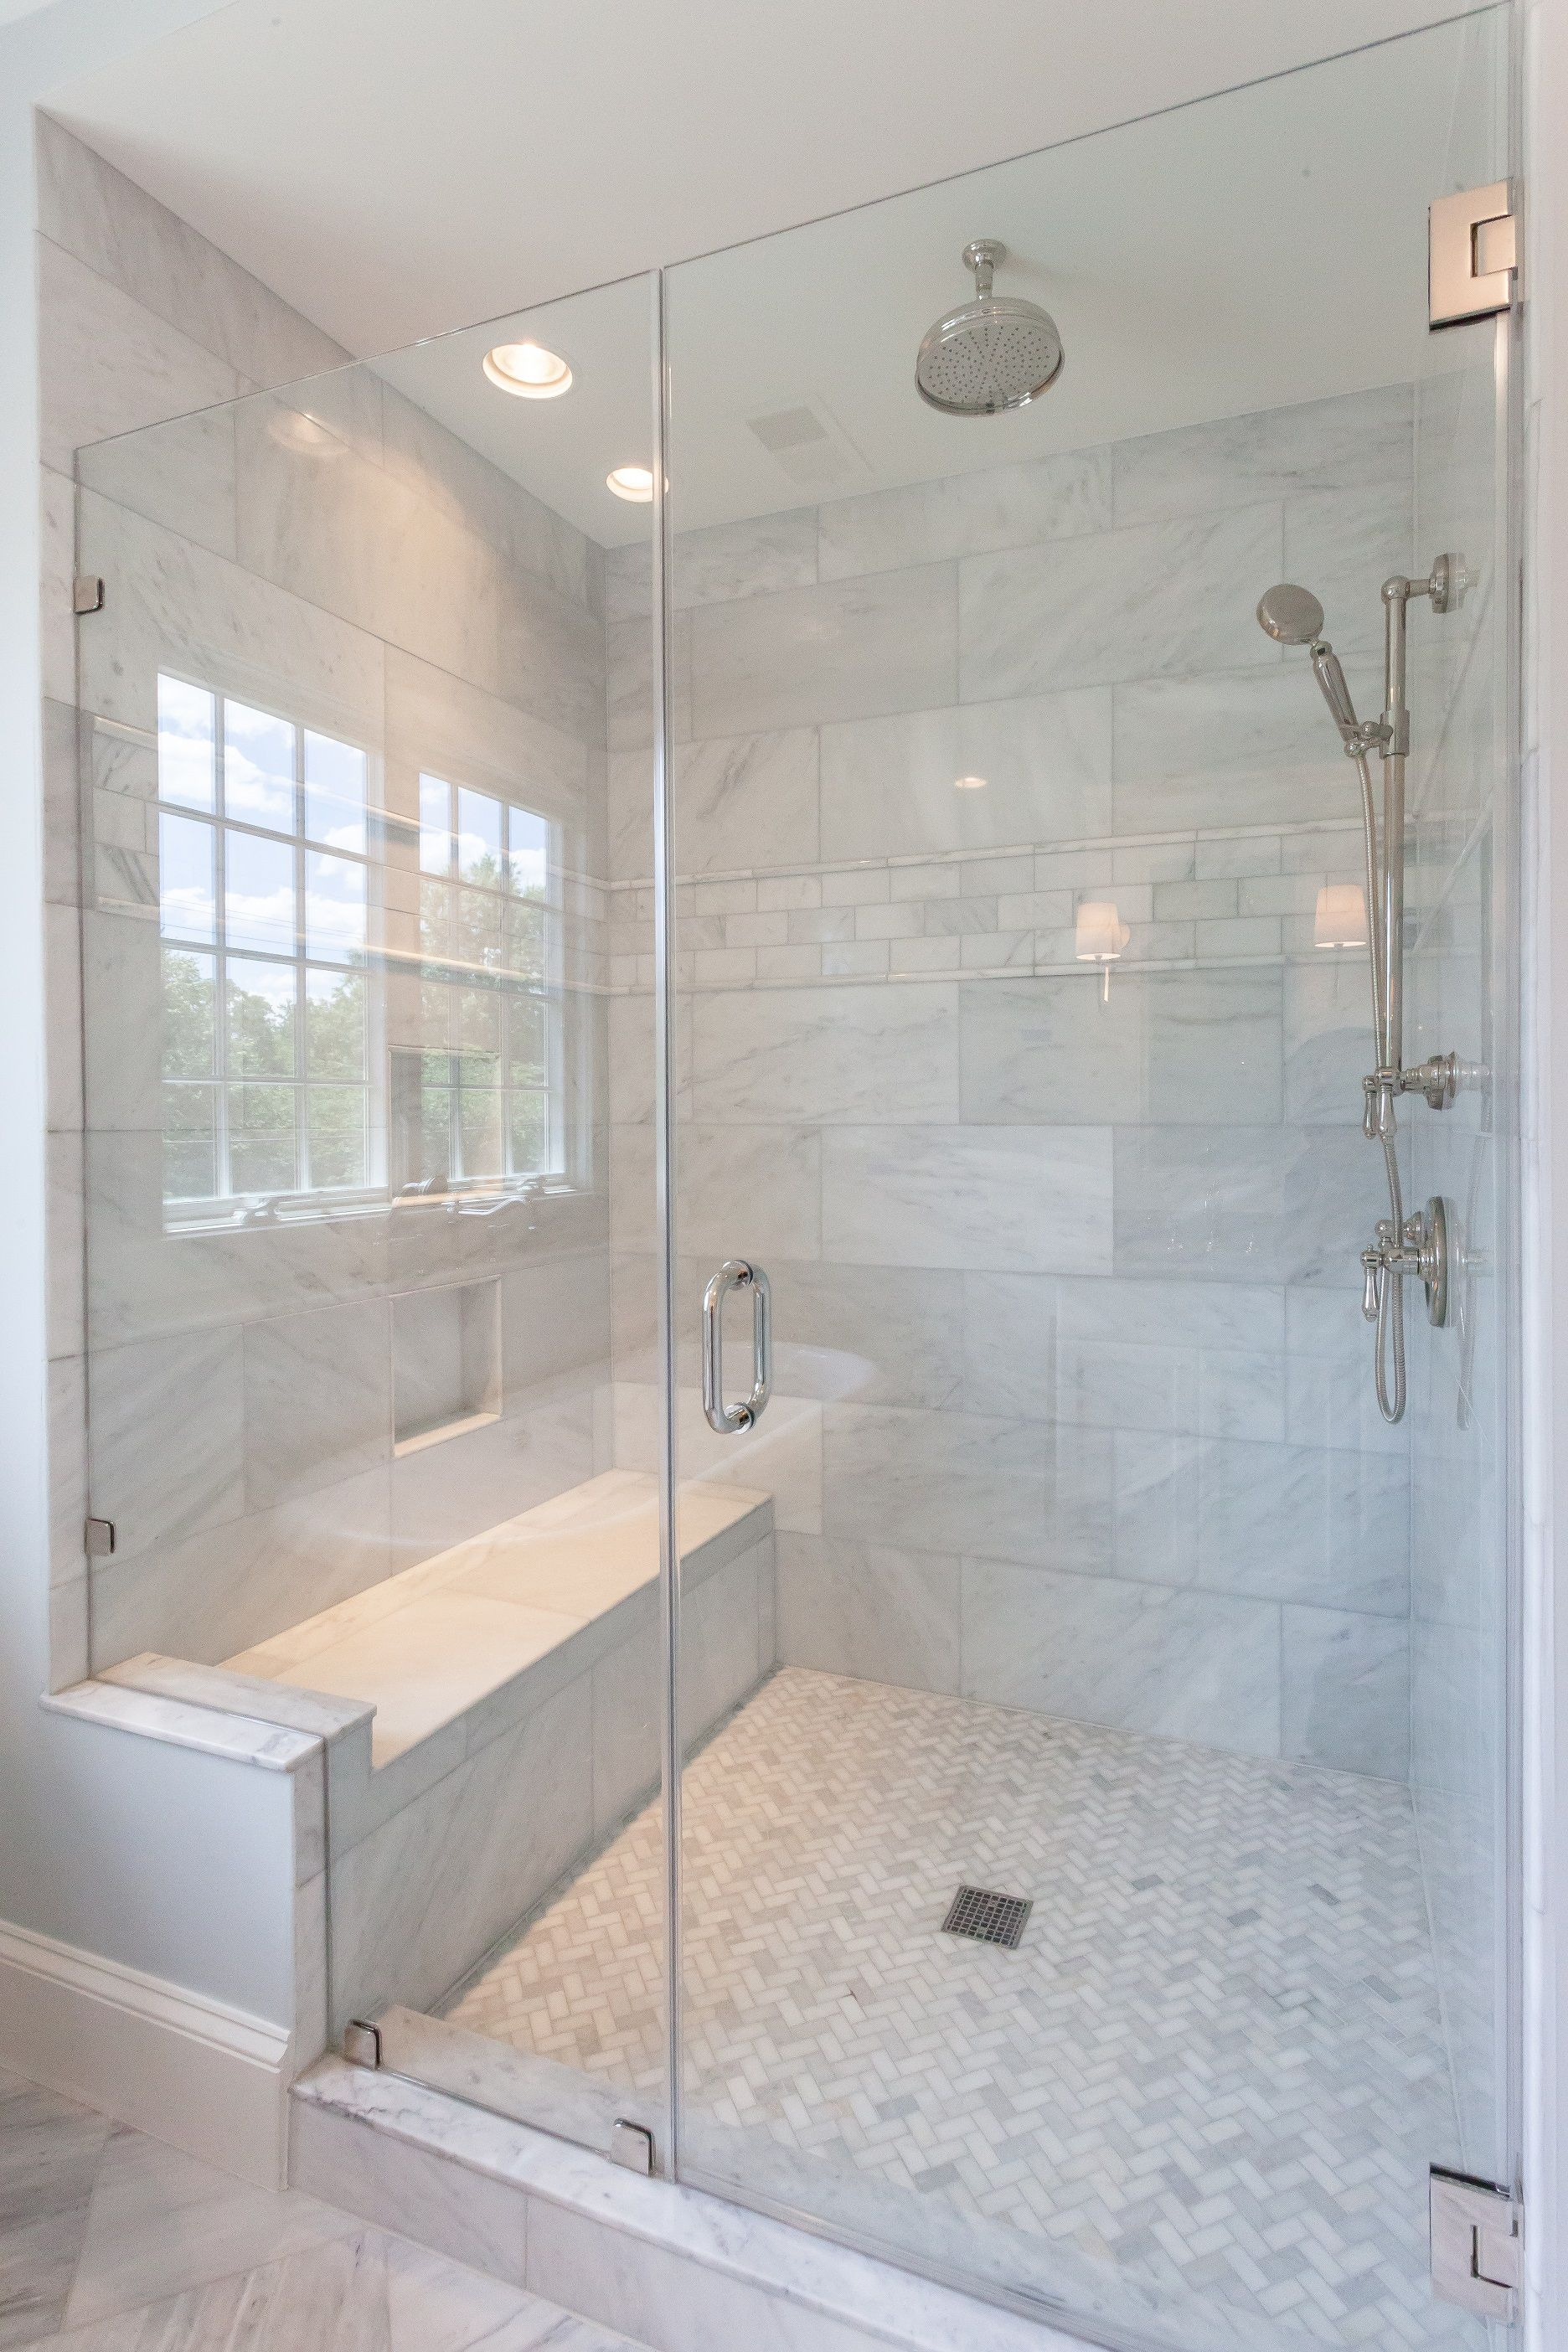 Walk In Shower with Seat Designs Inspirational Walk In Glass Shower with Built In Shower Seat and Marble